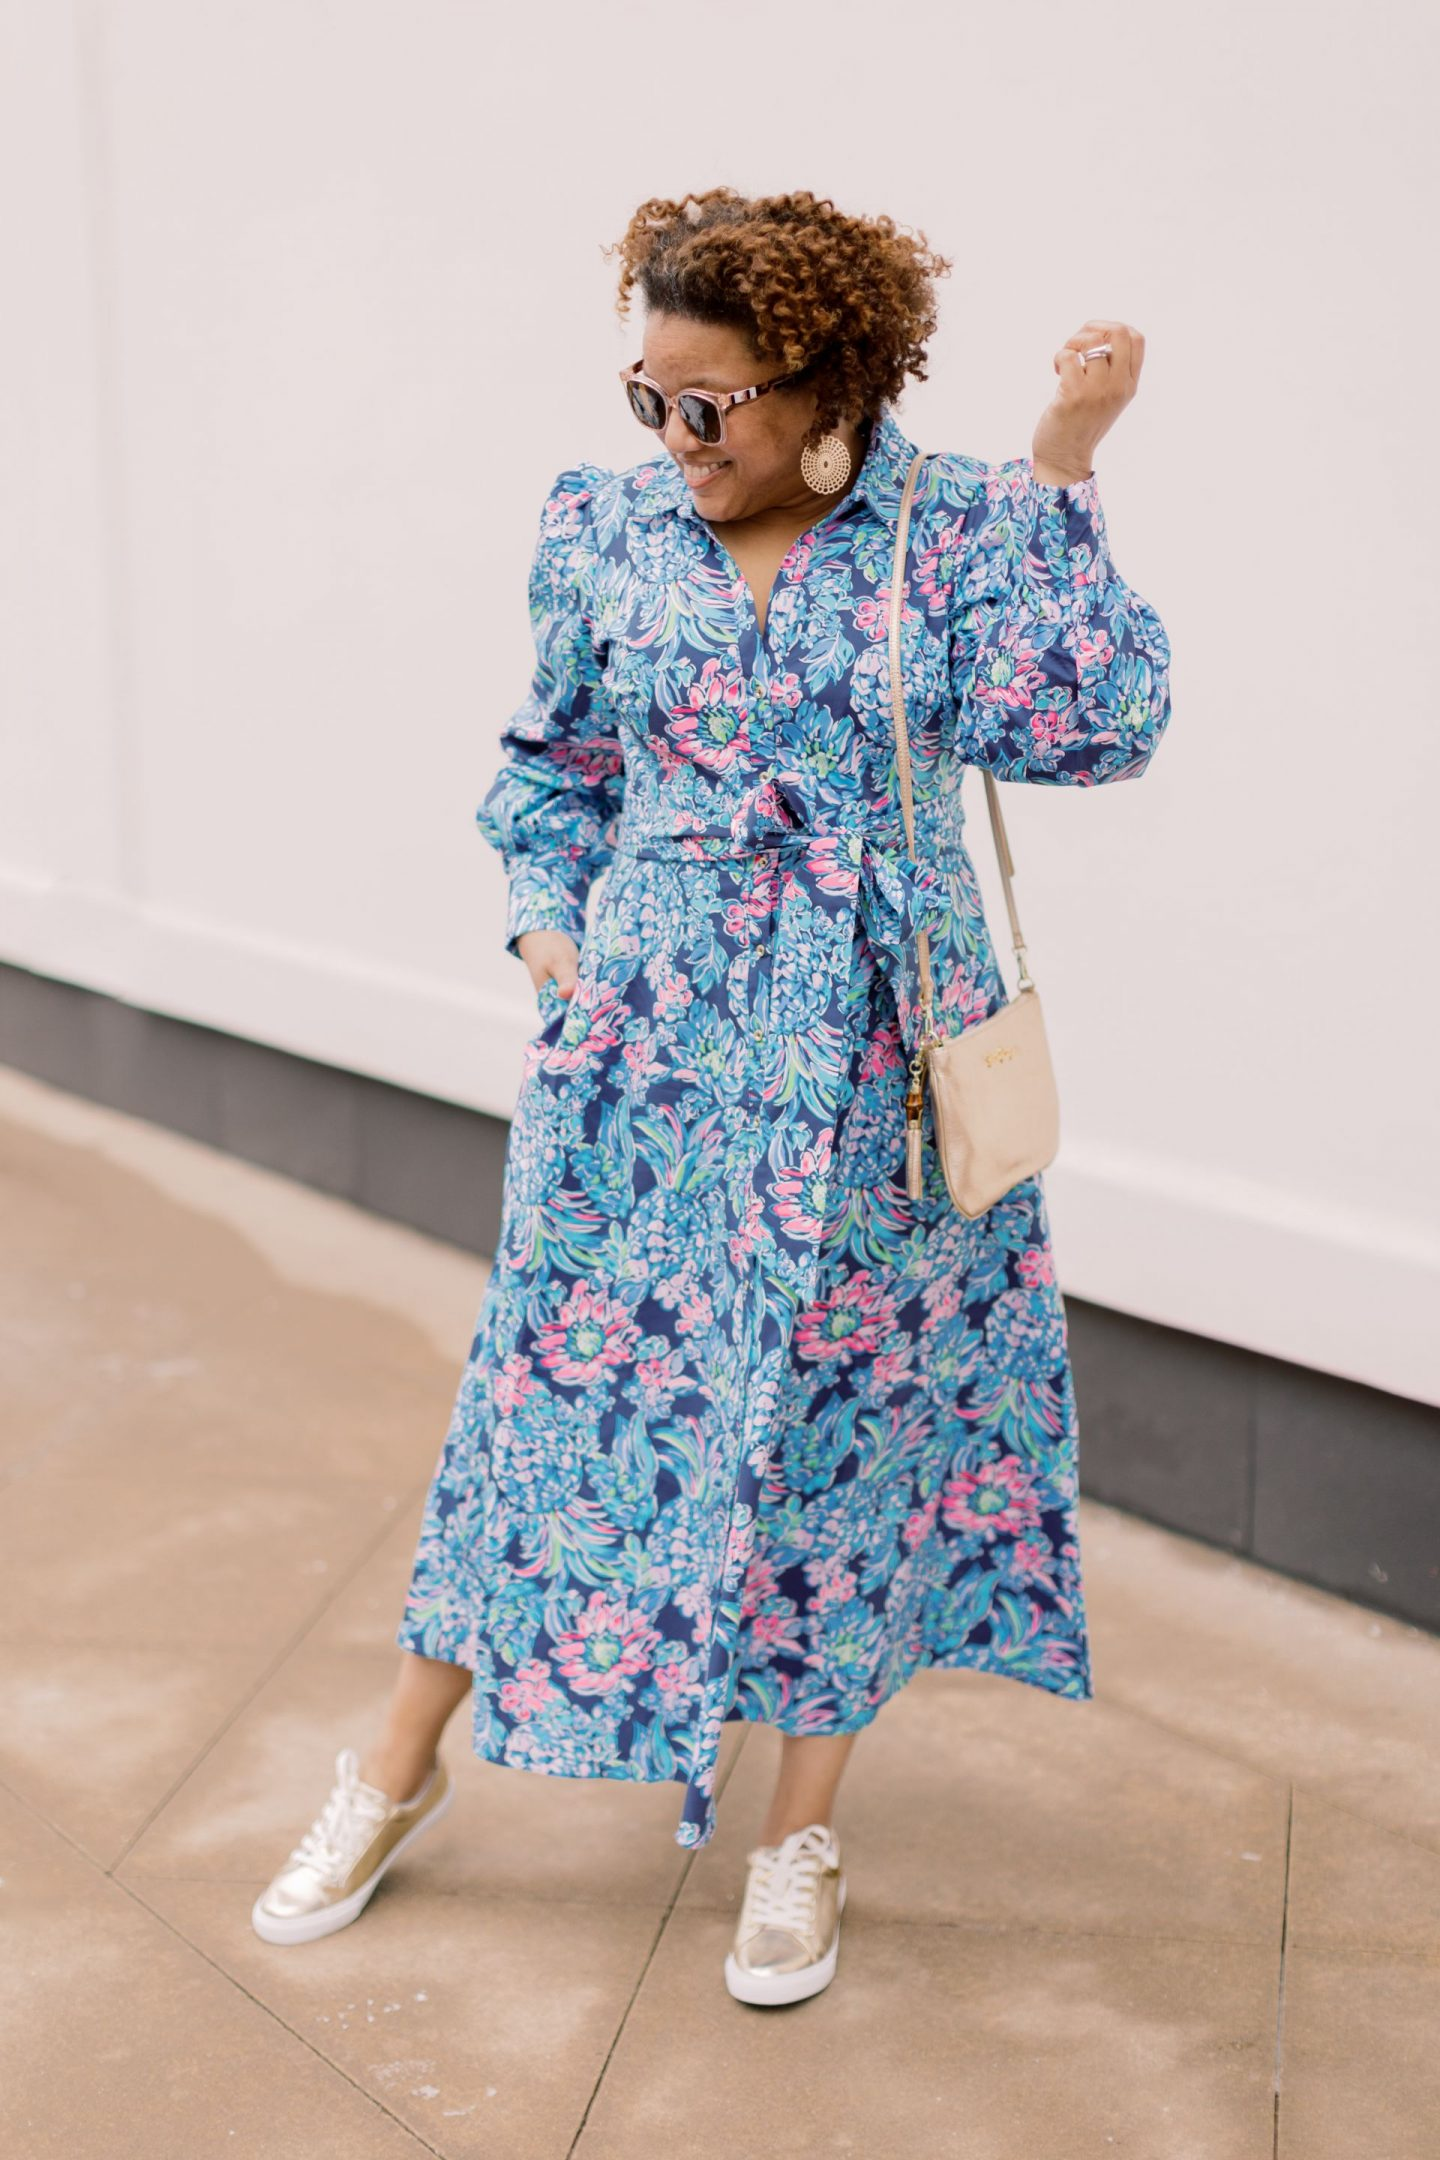 Lilly Pulitzer New Arrivals by popular Kentucky fashion blog, Really Rynetta: image of a woman wearing a Lilly Pulitzer Mira Stretch Midi Shirtdress and Lilly Pulitzer Hallie lux sneaker.